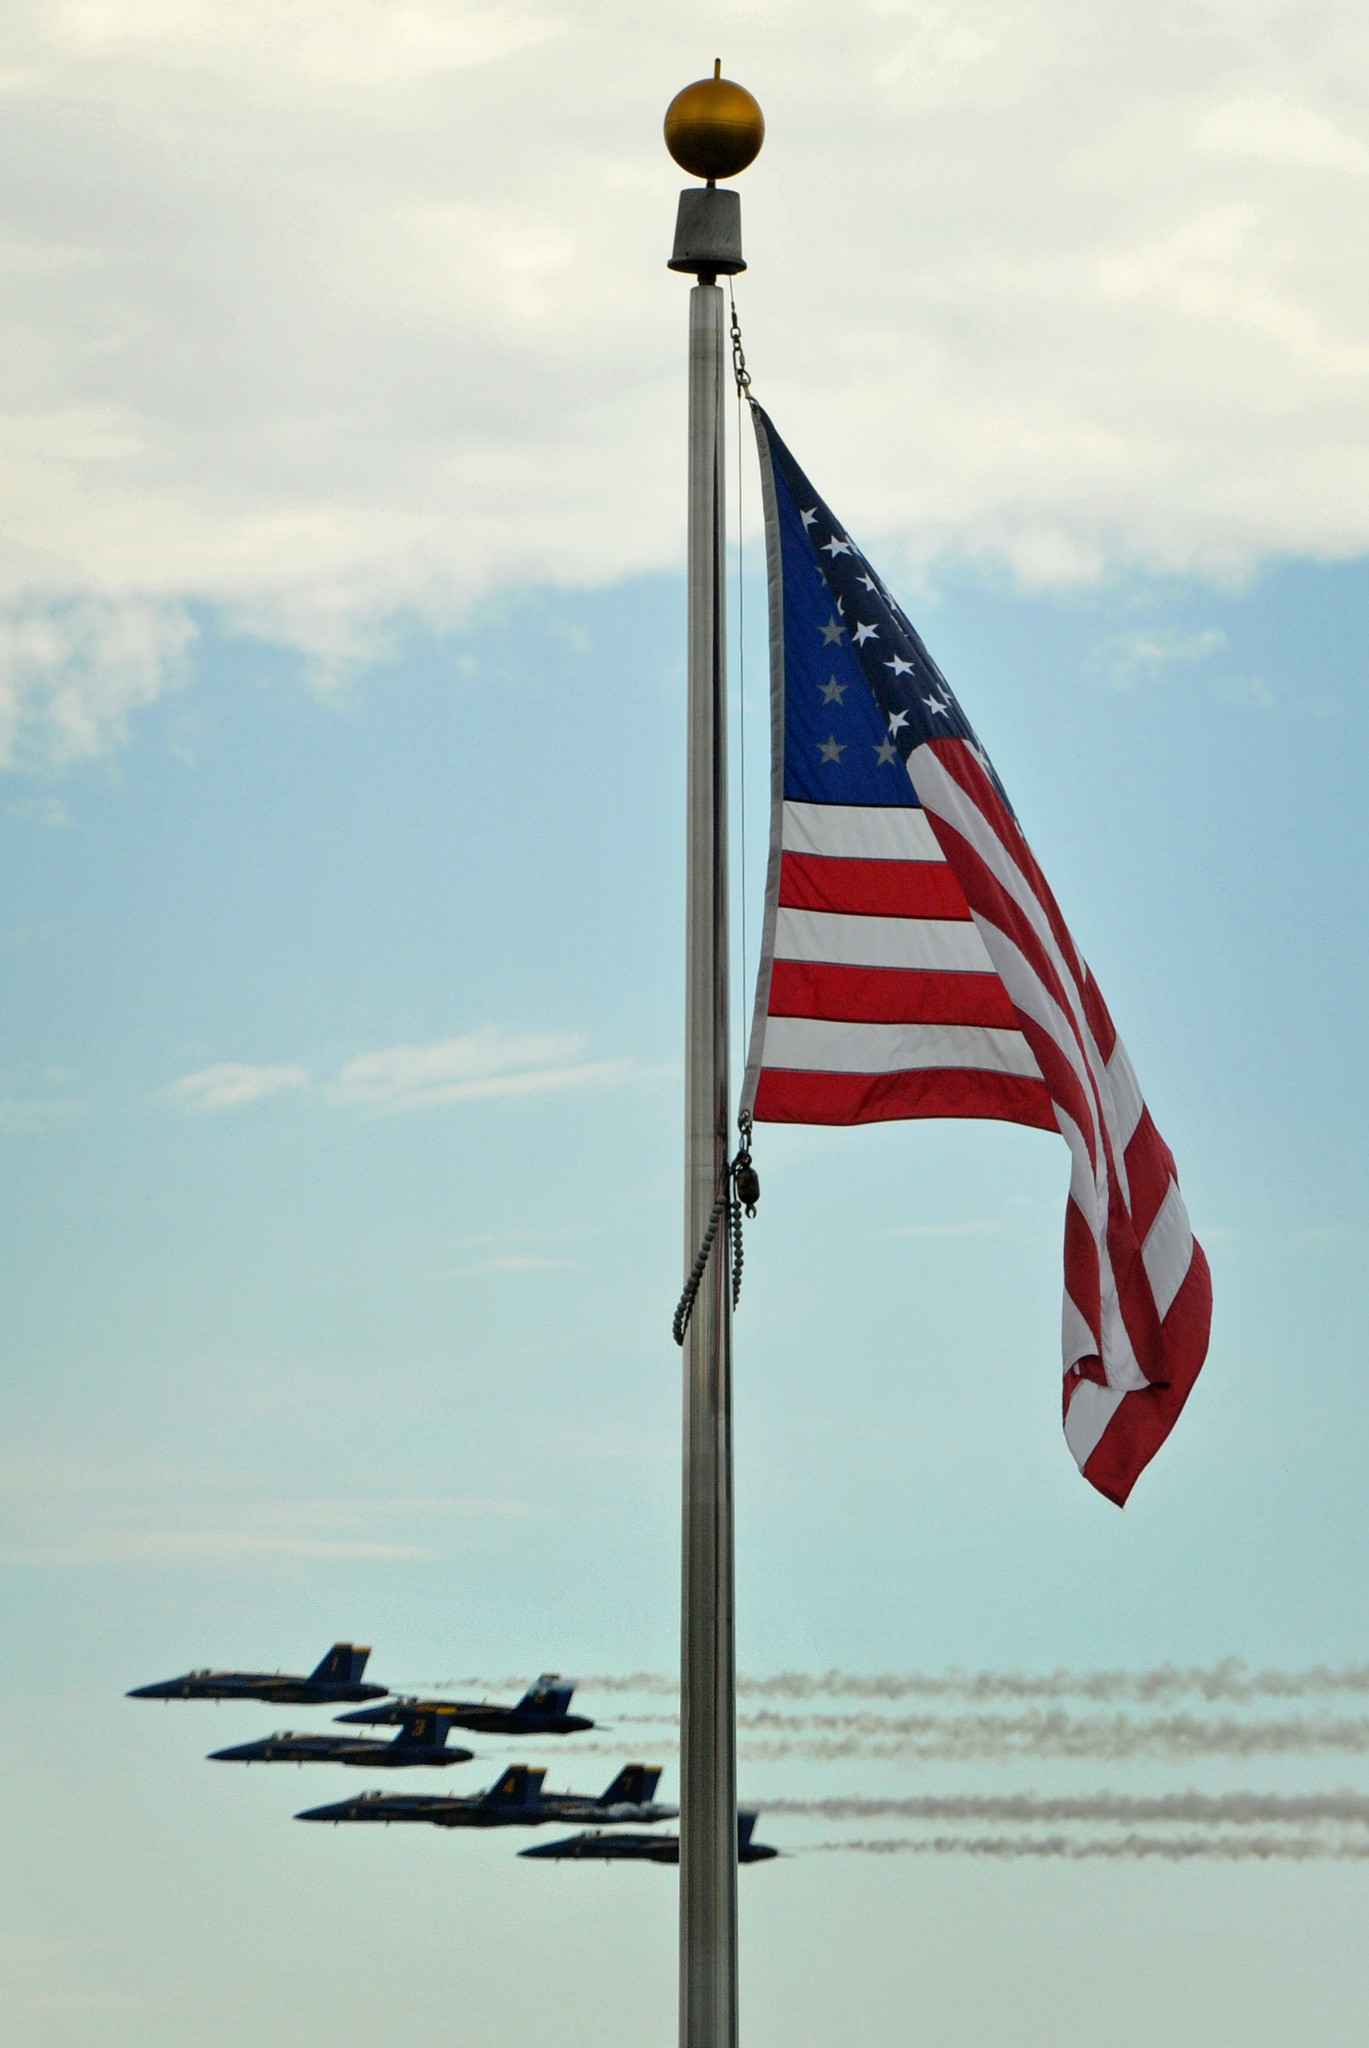 Blue Angels fly by [Pictures] - Flag